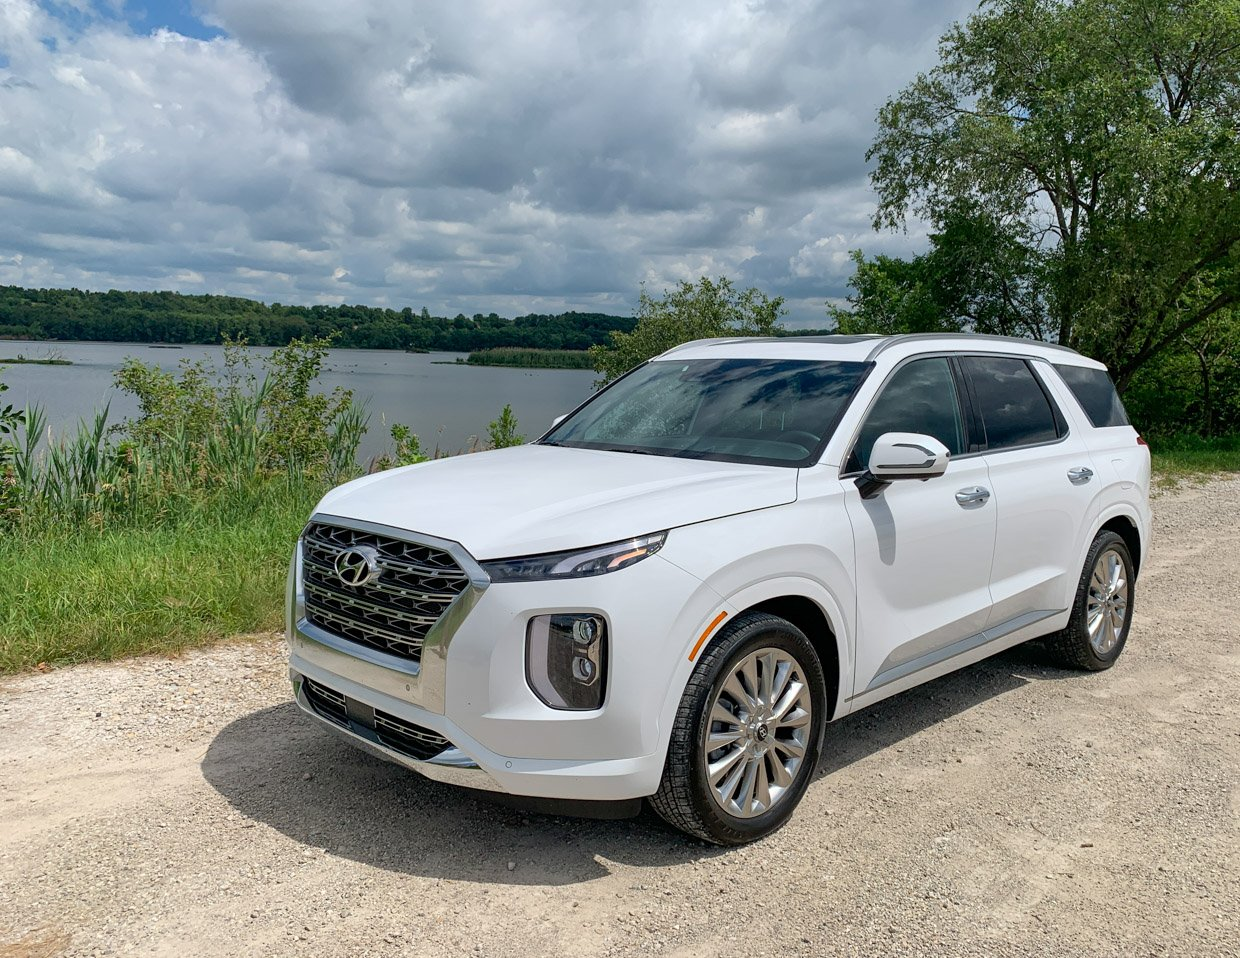 2020 Hyundai Palisade First Drive Review: A Value-Packed Delight